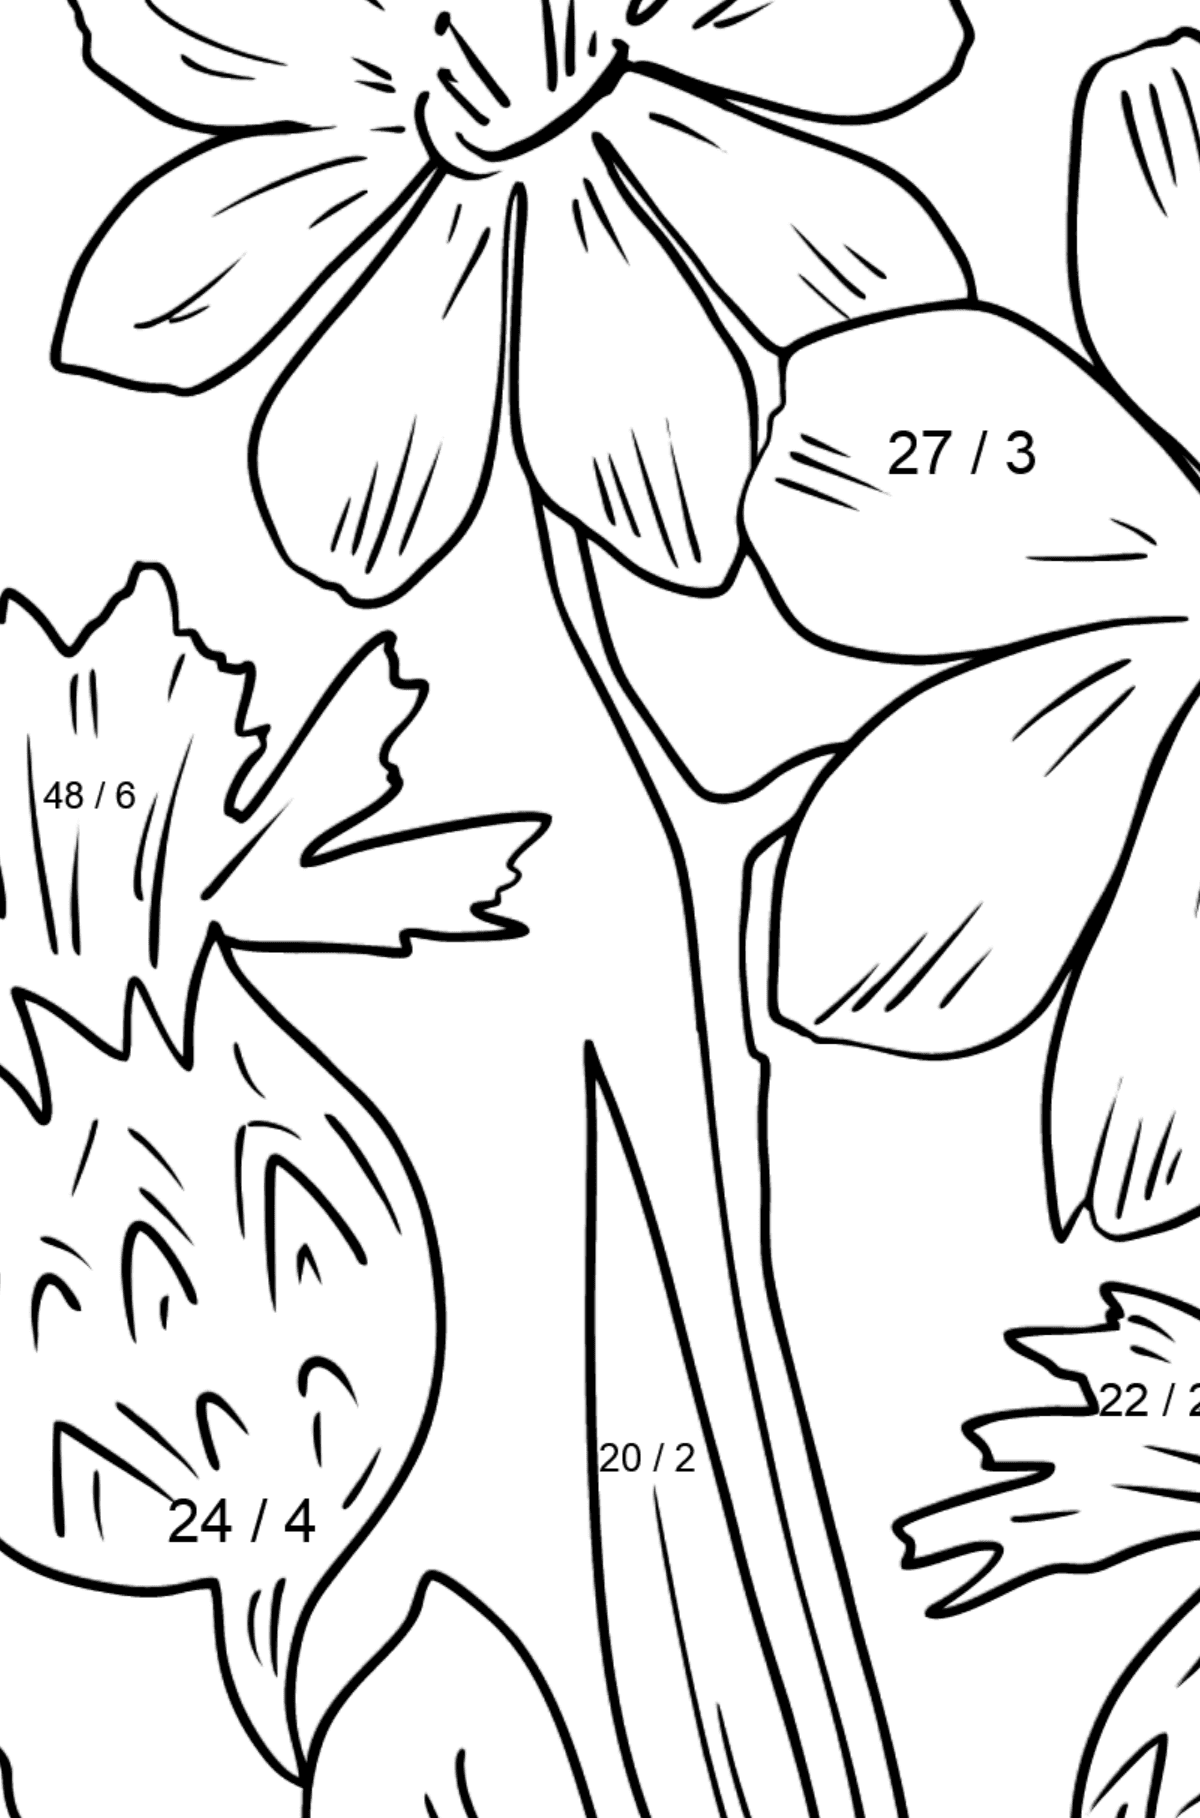 Flower Coloring Page - flowers in the meadow - Math Coloring - Division for Kids